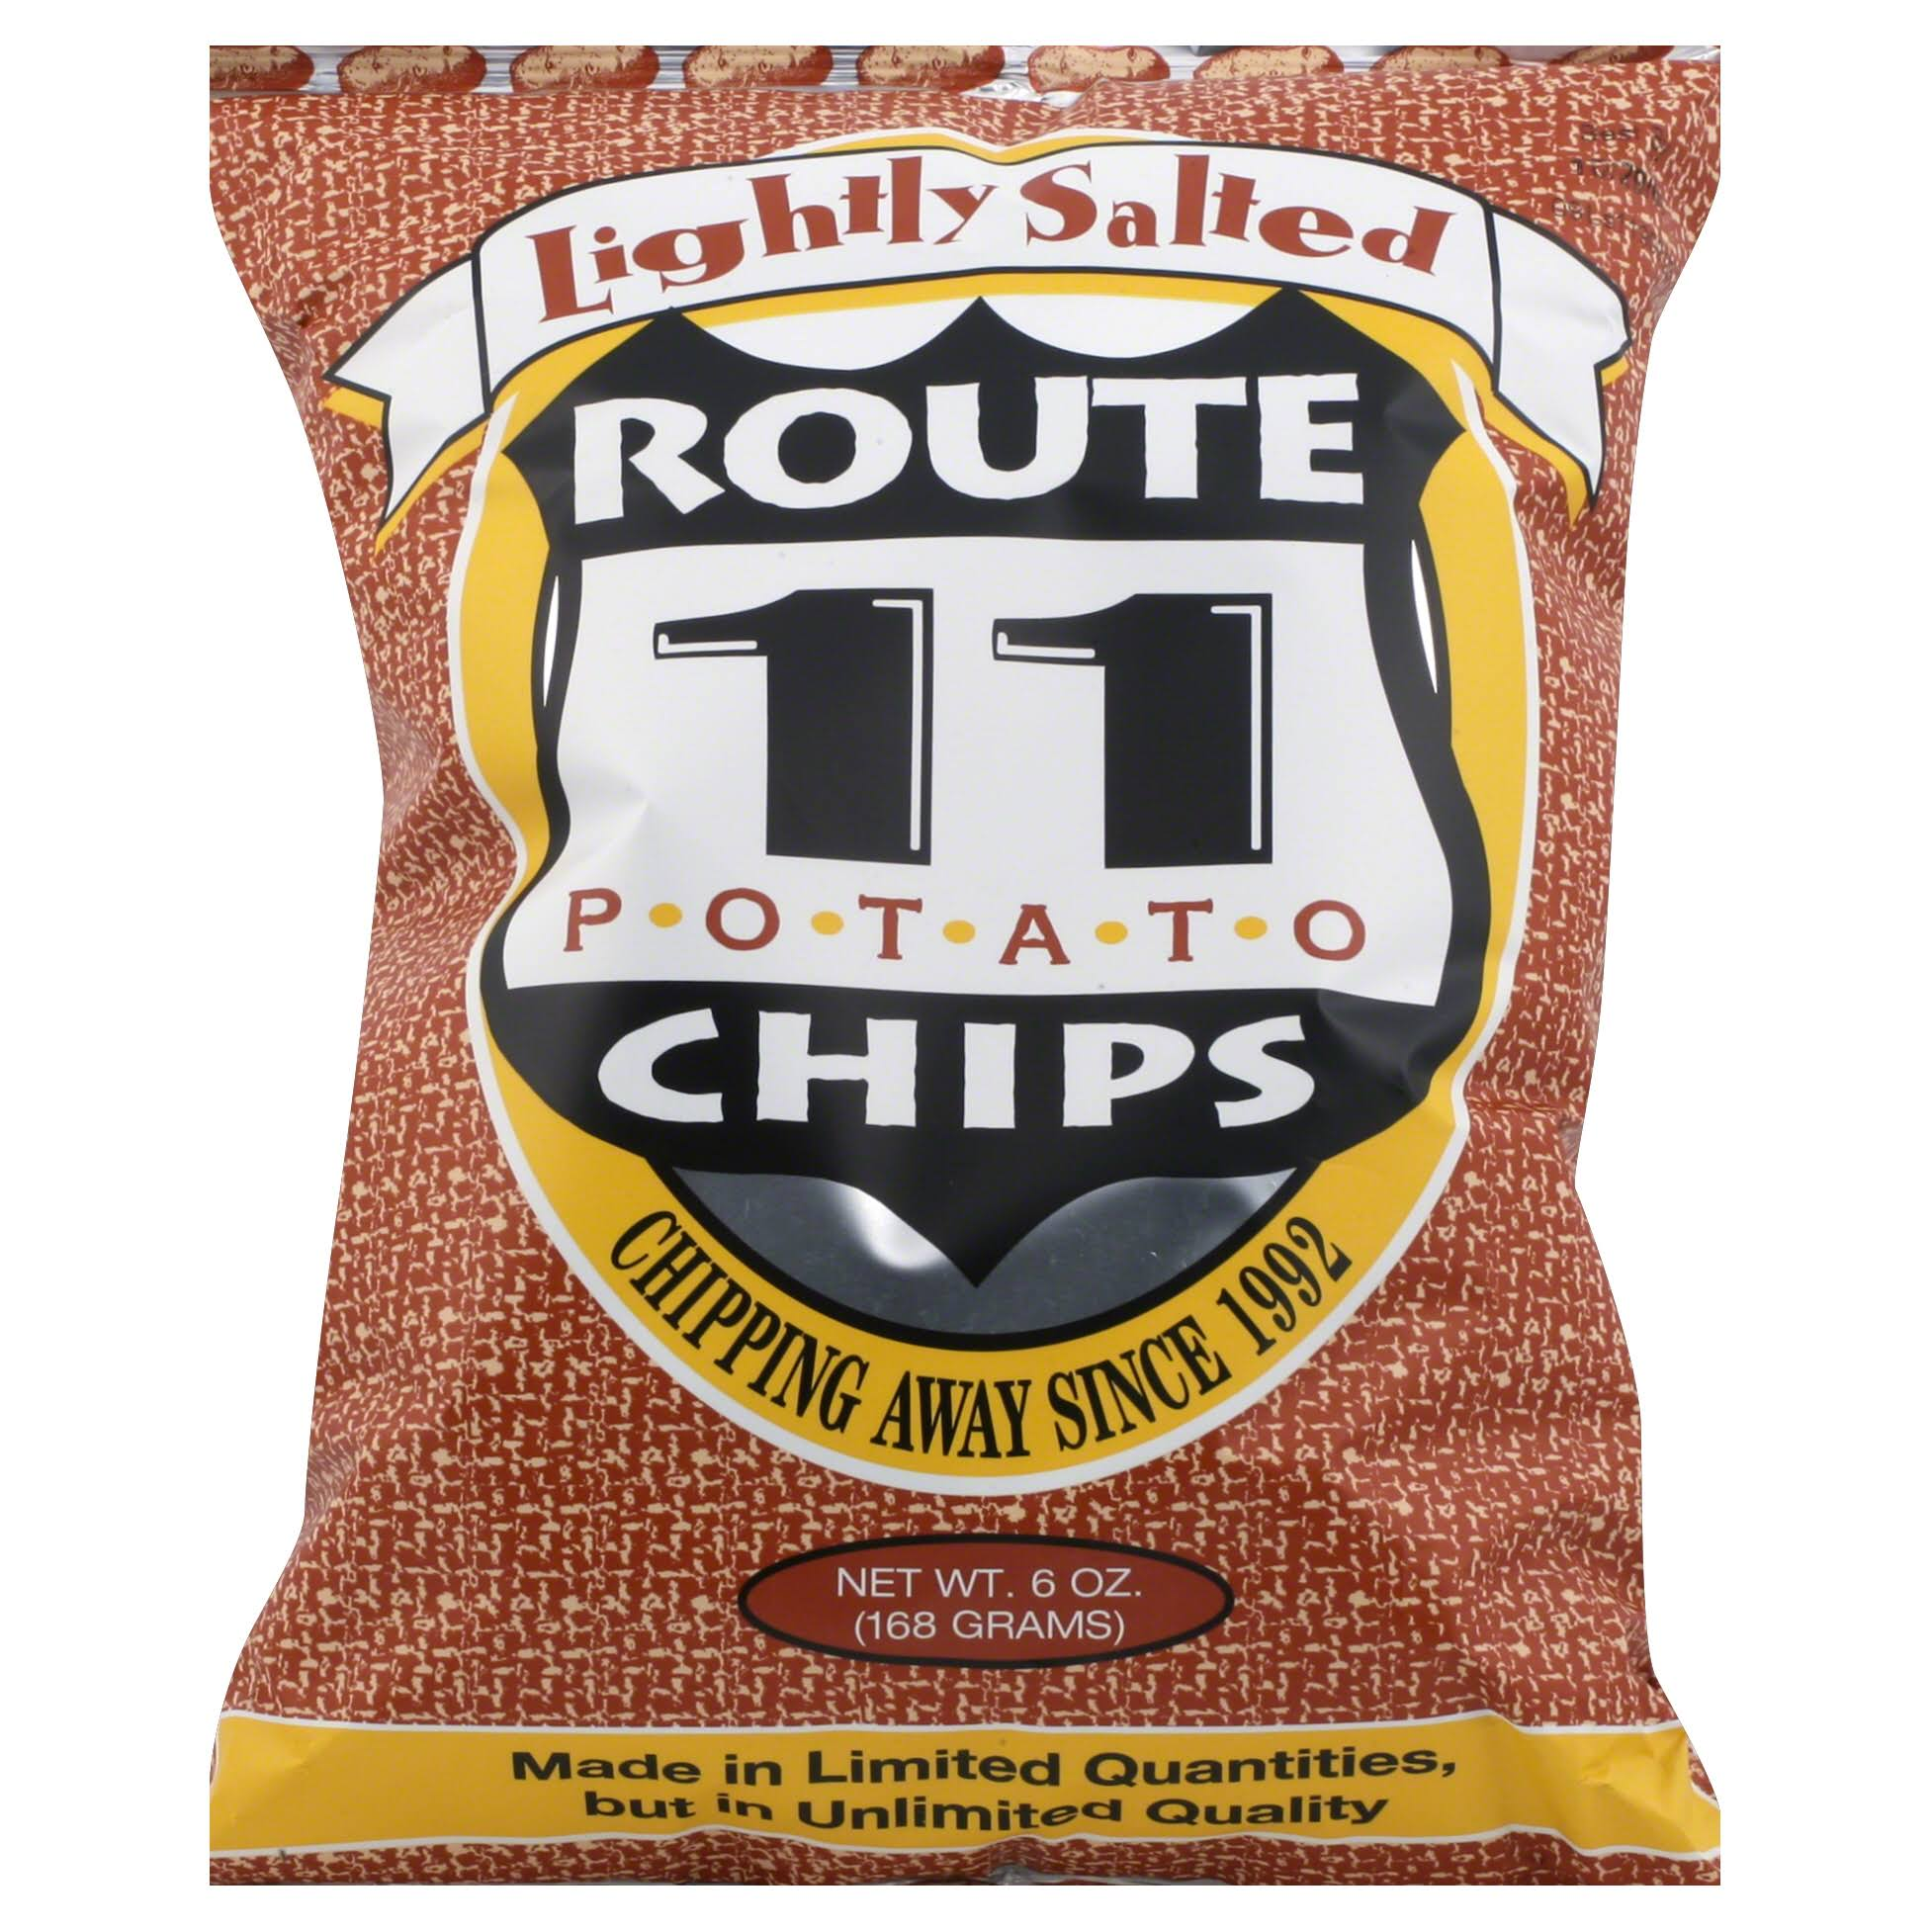 Route 11 Potato Chips - Lightly Salted, 6oz